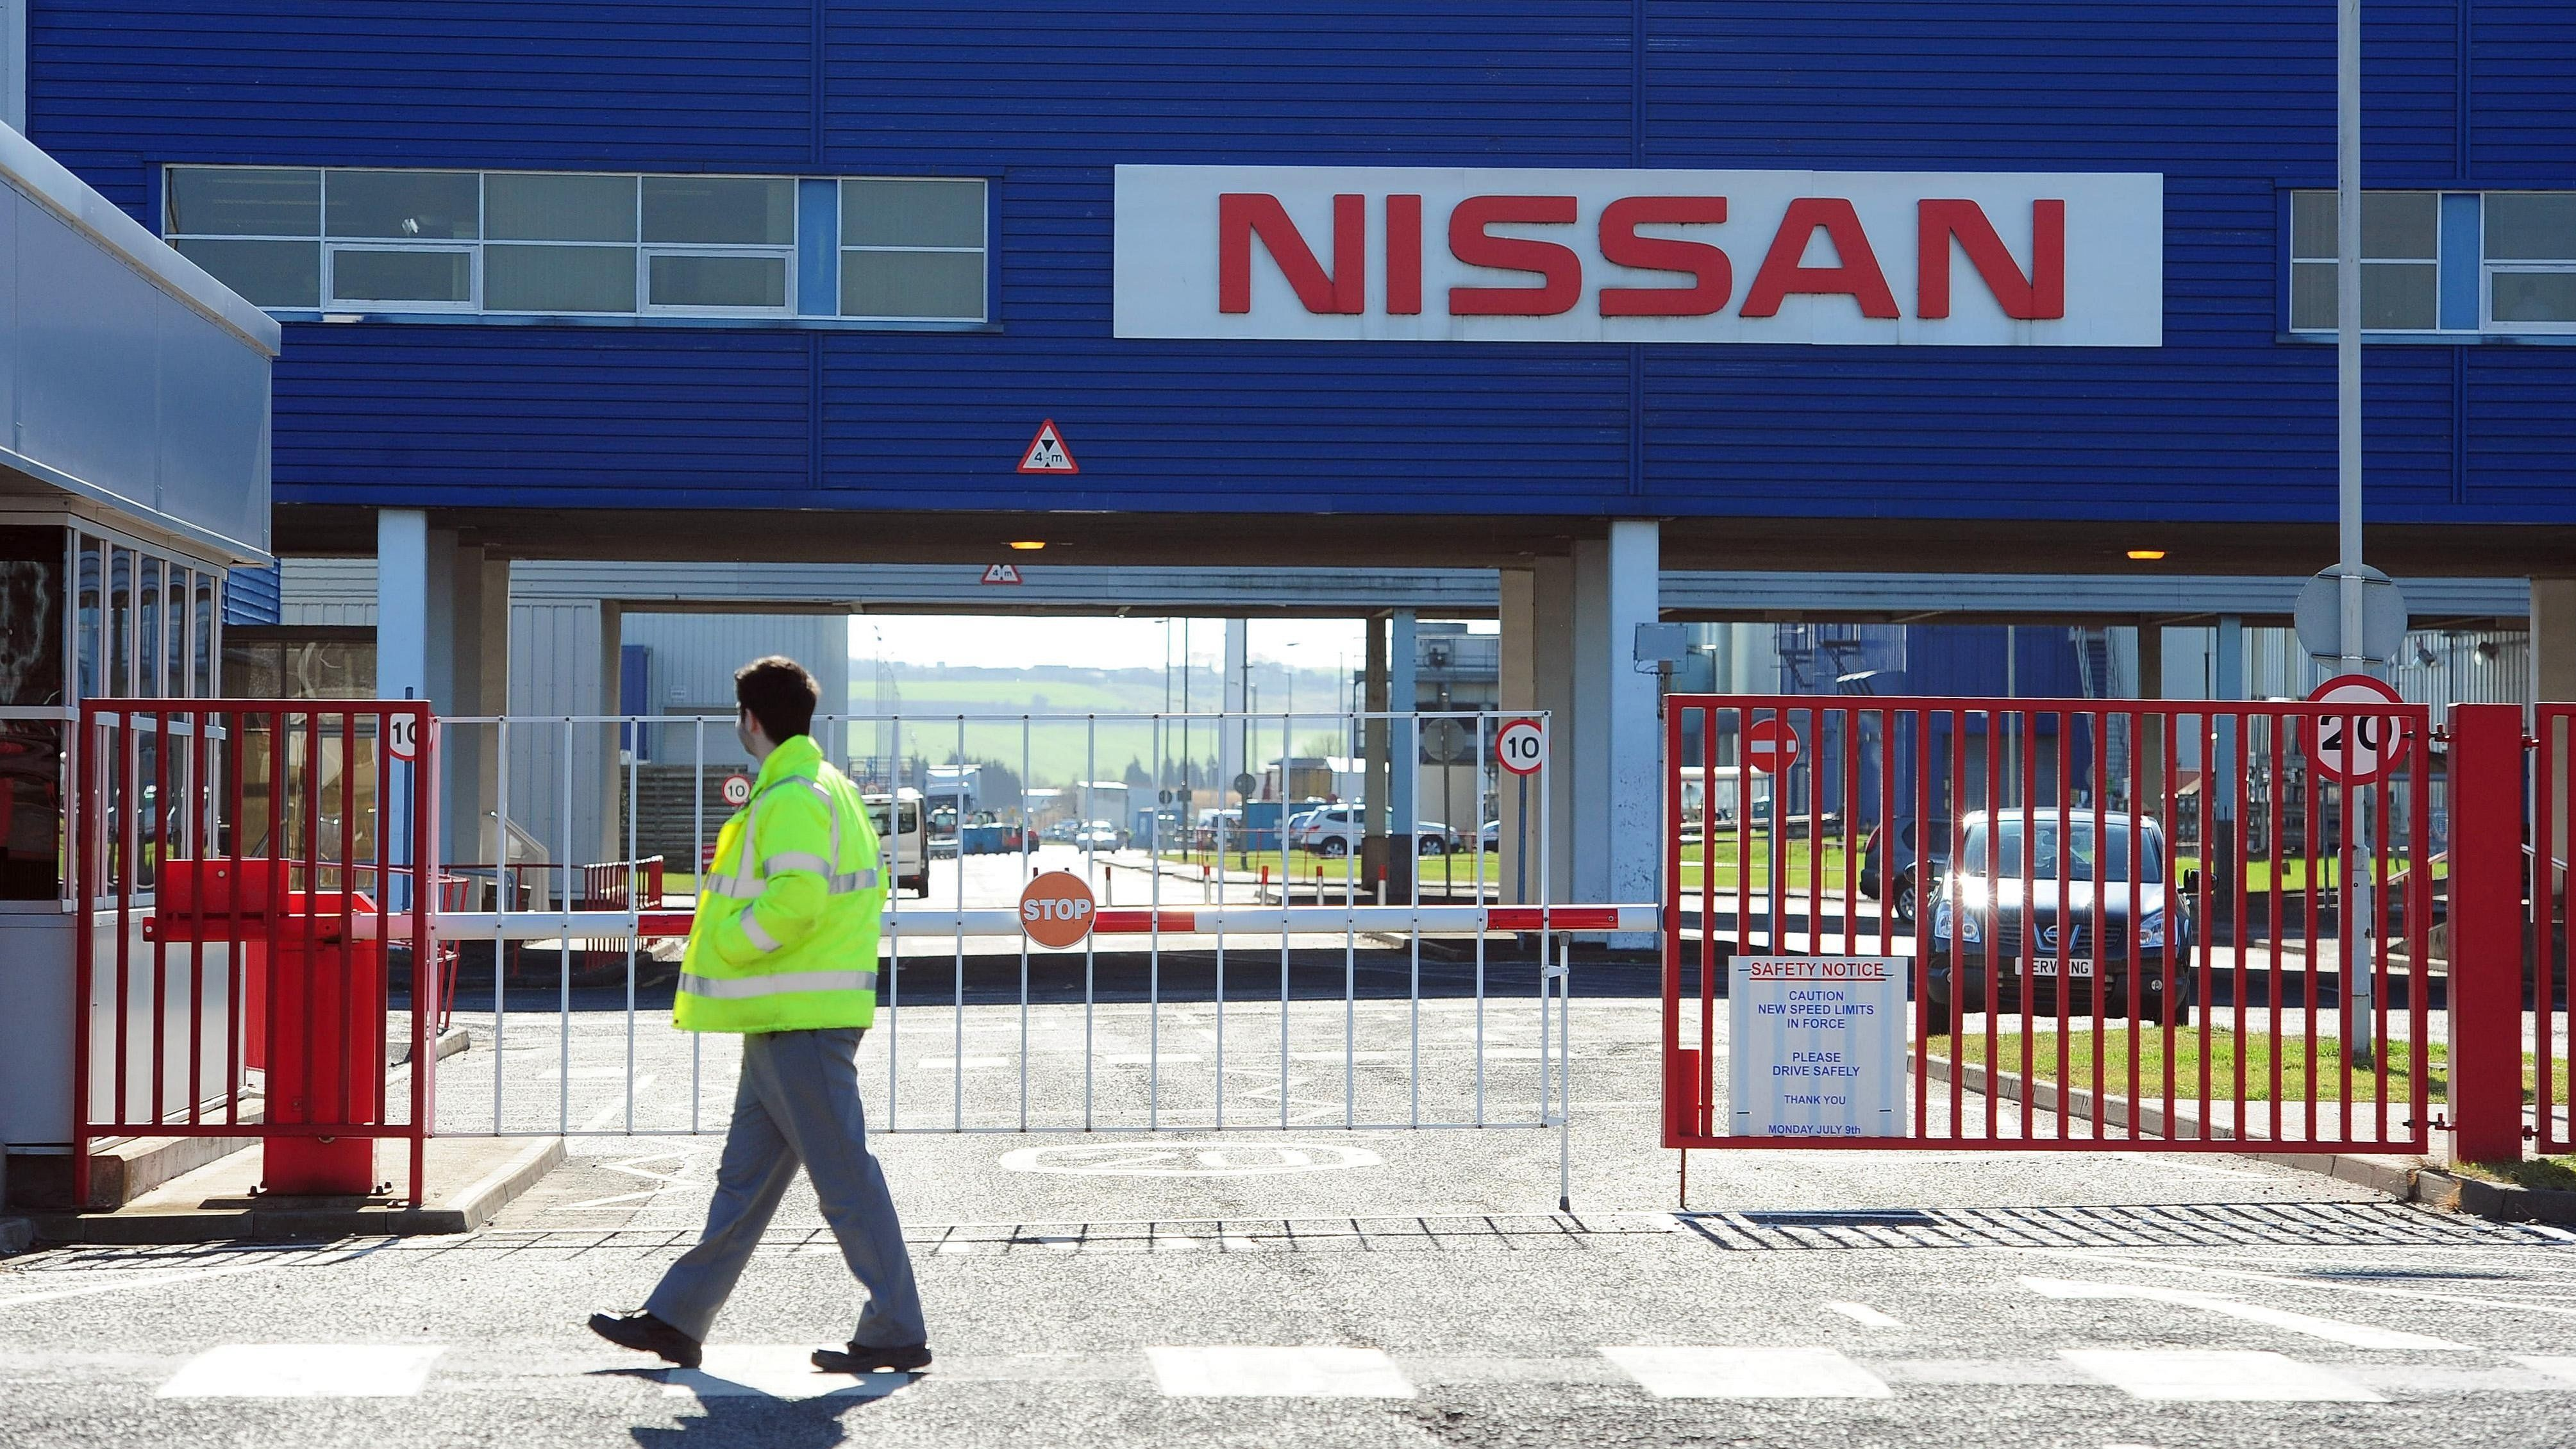 Brexit played 'inevitable role' in Nissan X-Trail decision, says MP